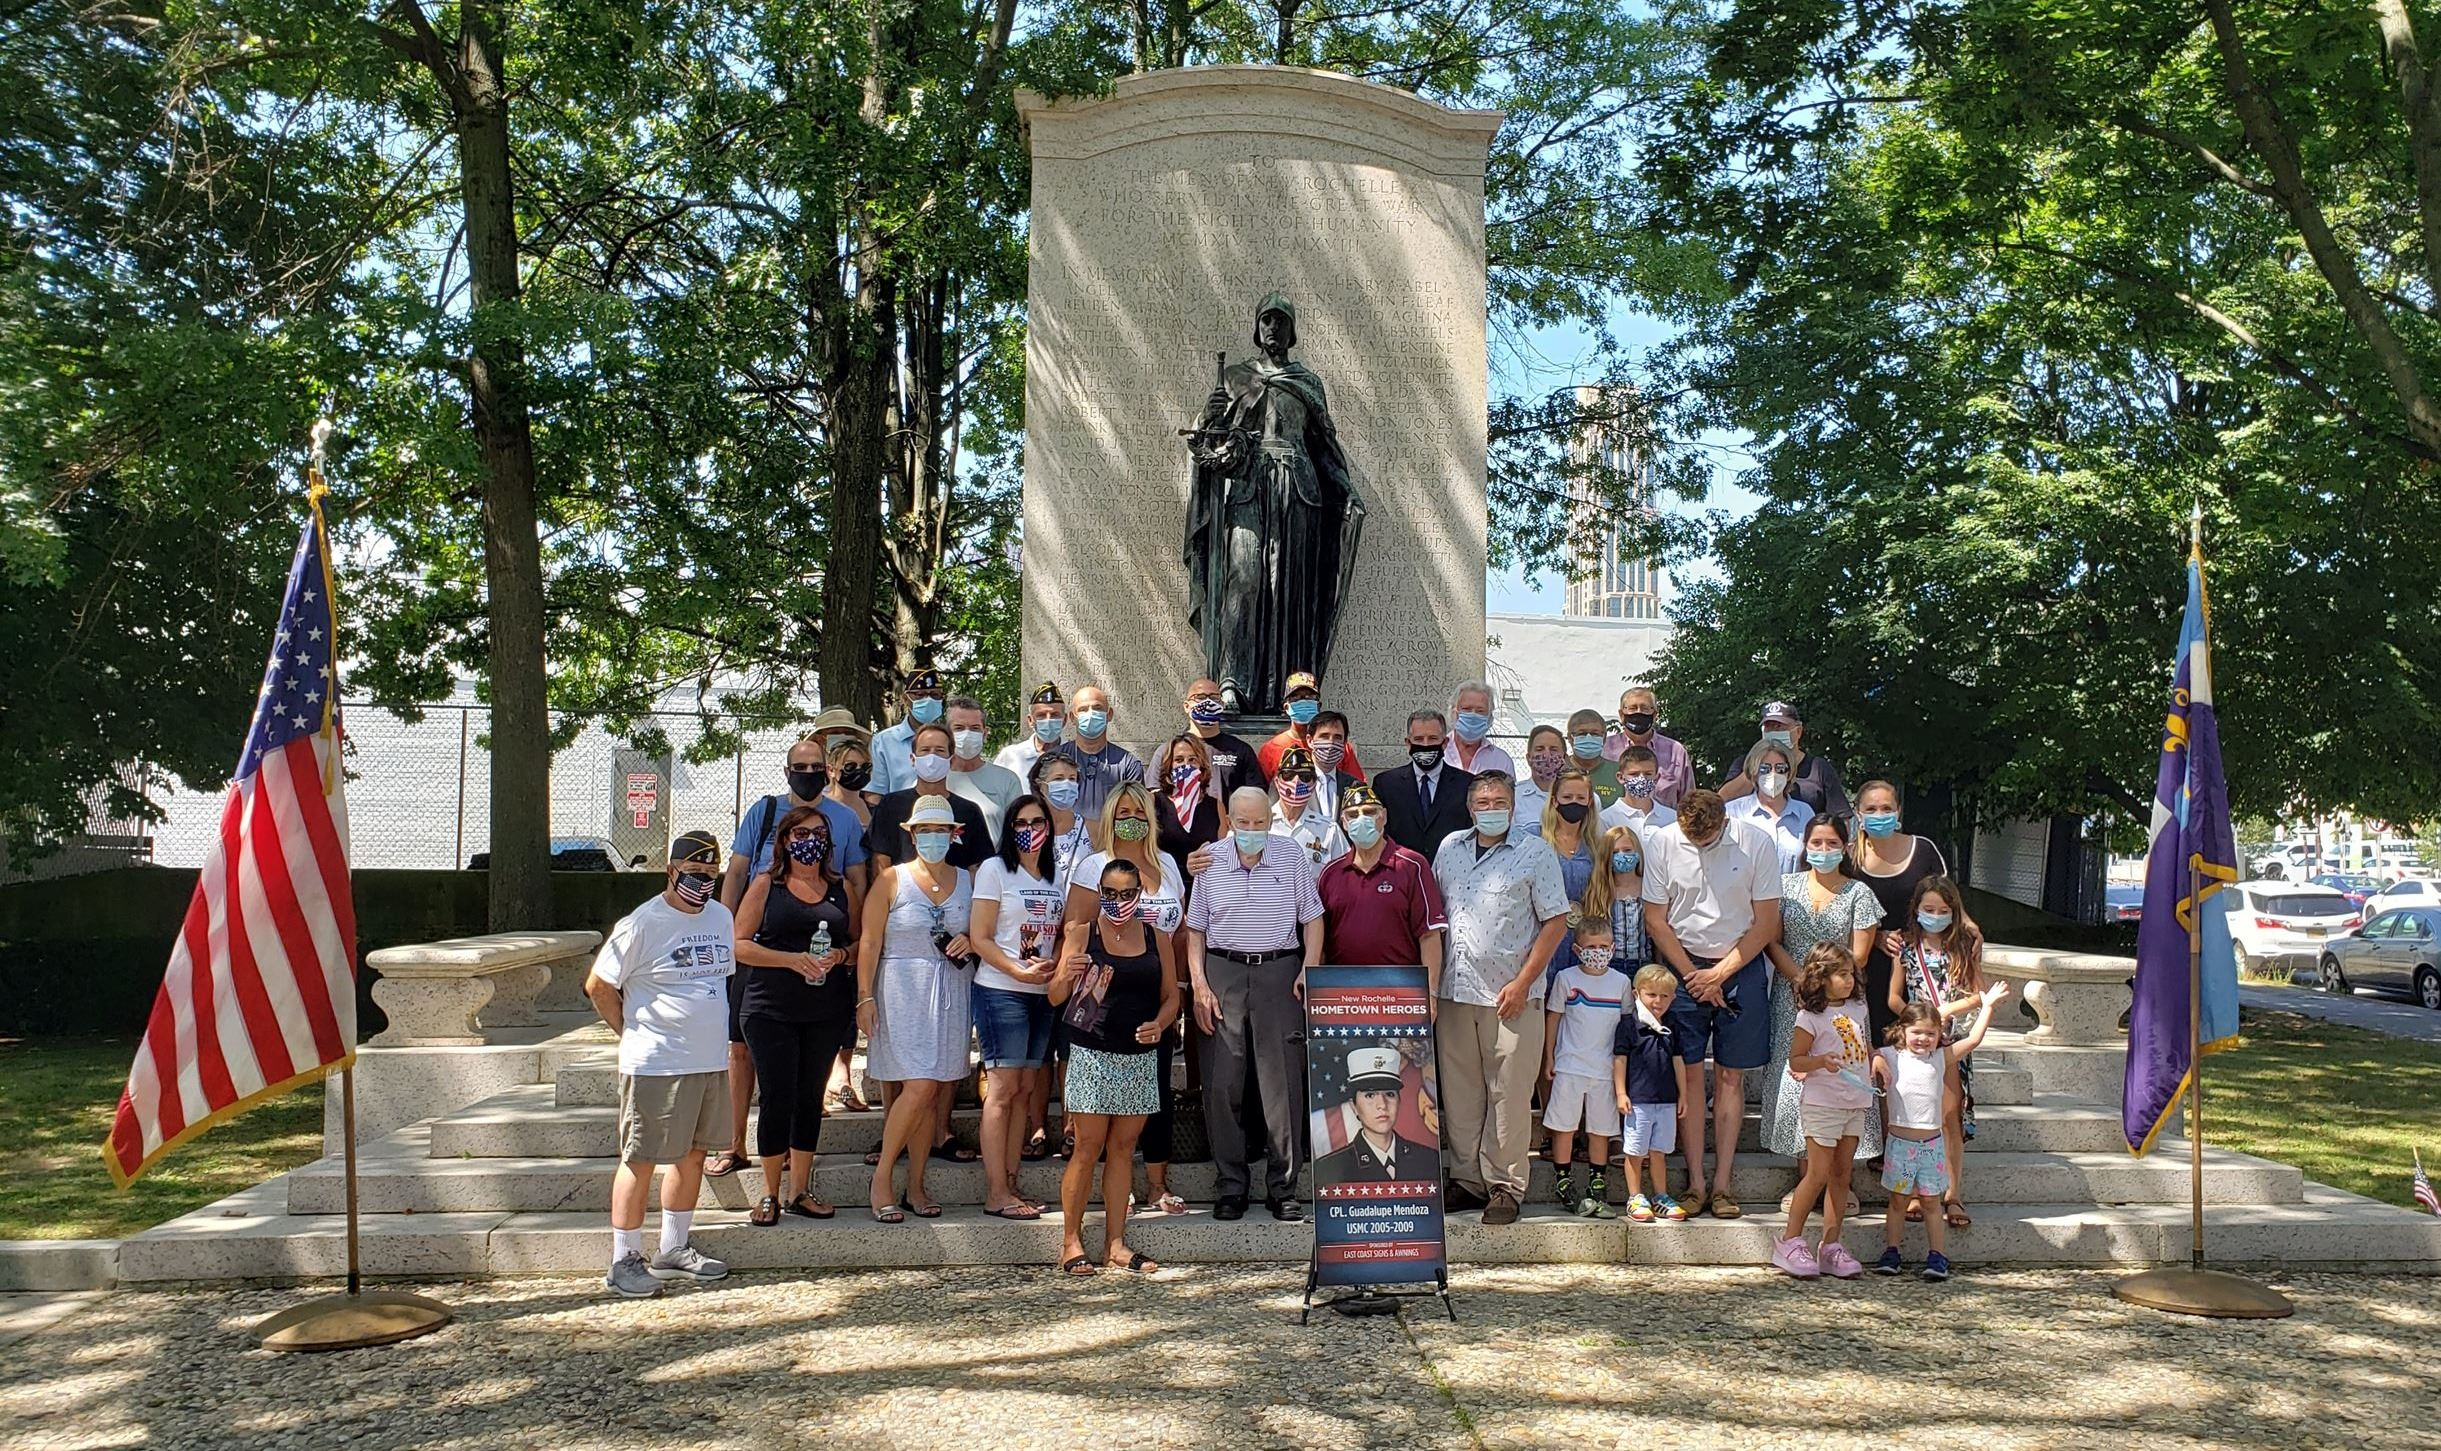 Group shot with poster of veteran banner in front of WW1 statue at Faneuil Park